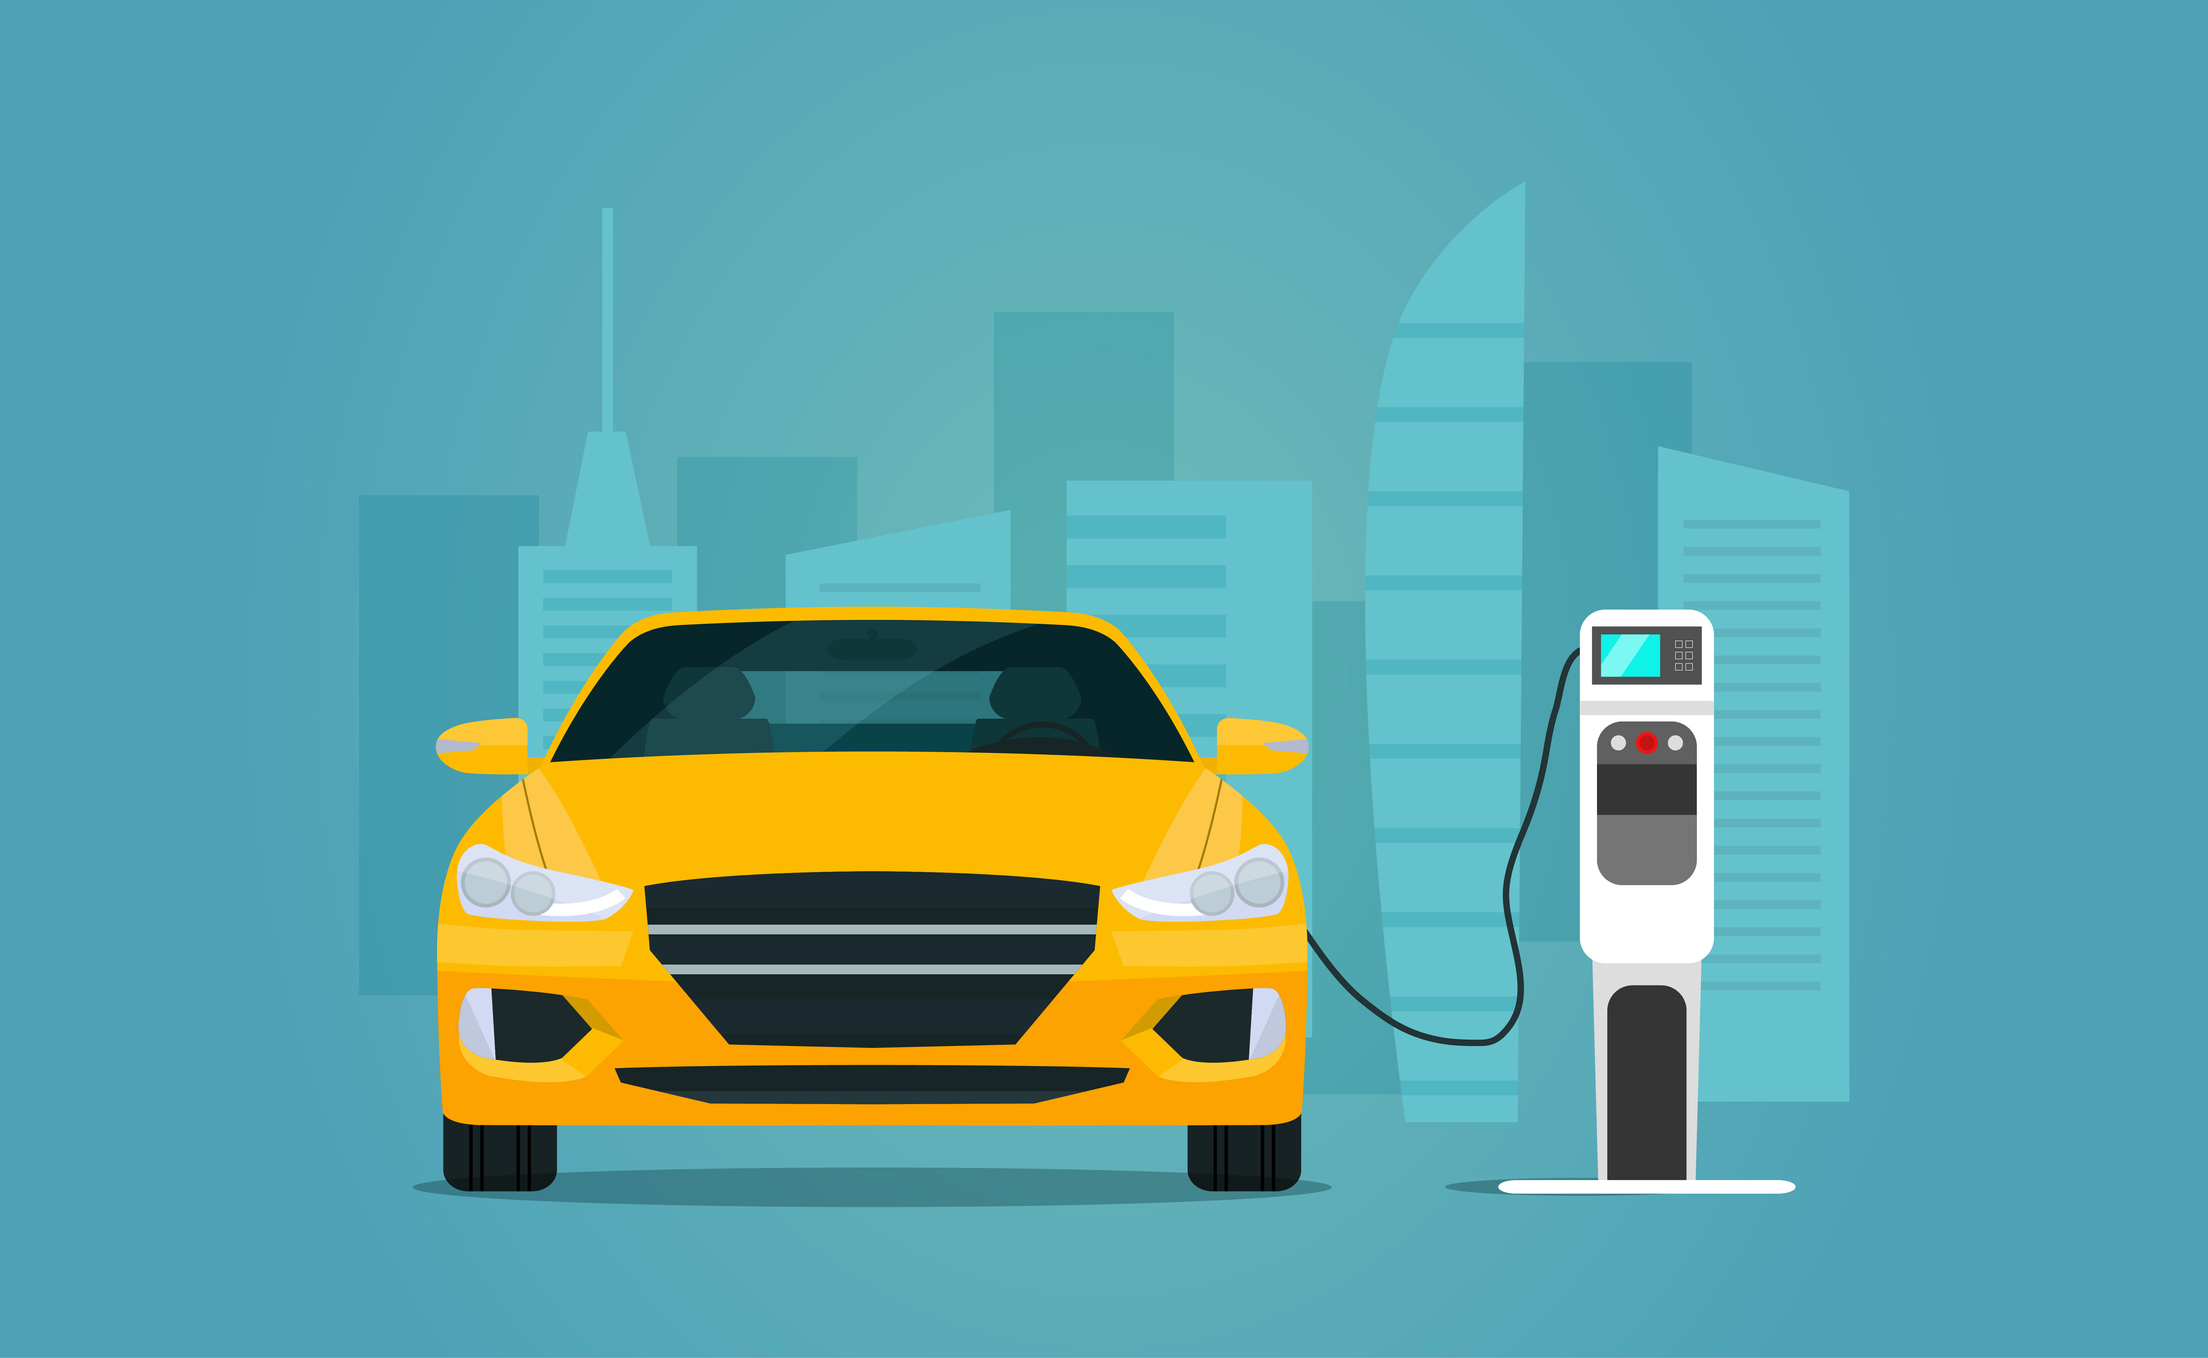 Electric sedan car charging